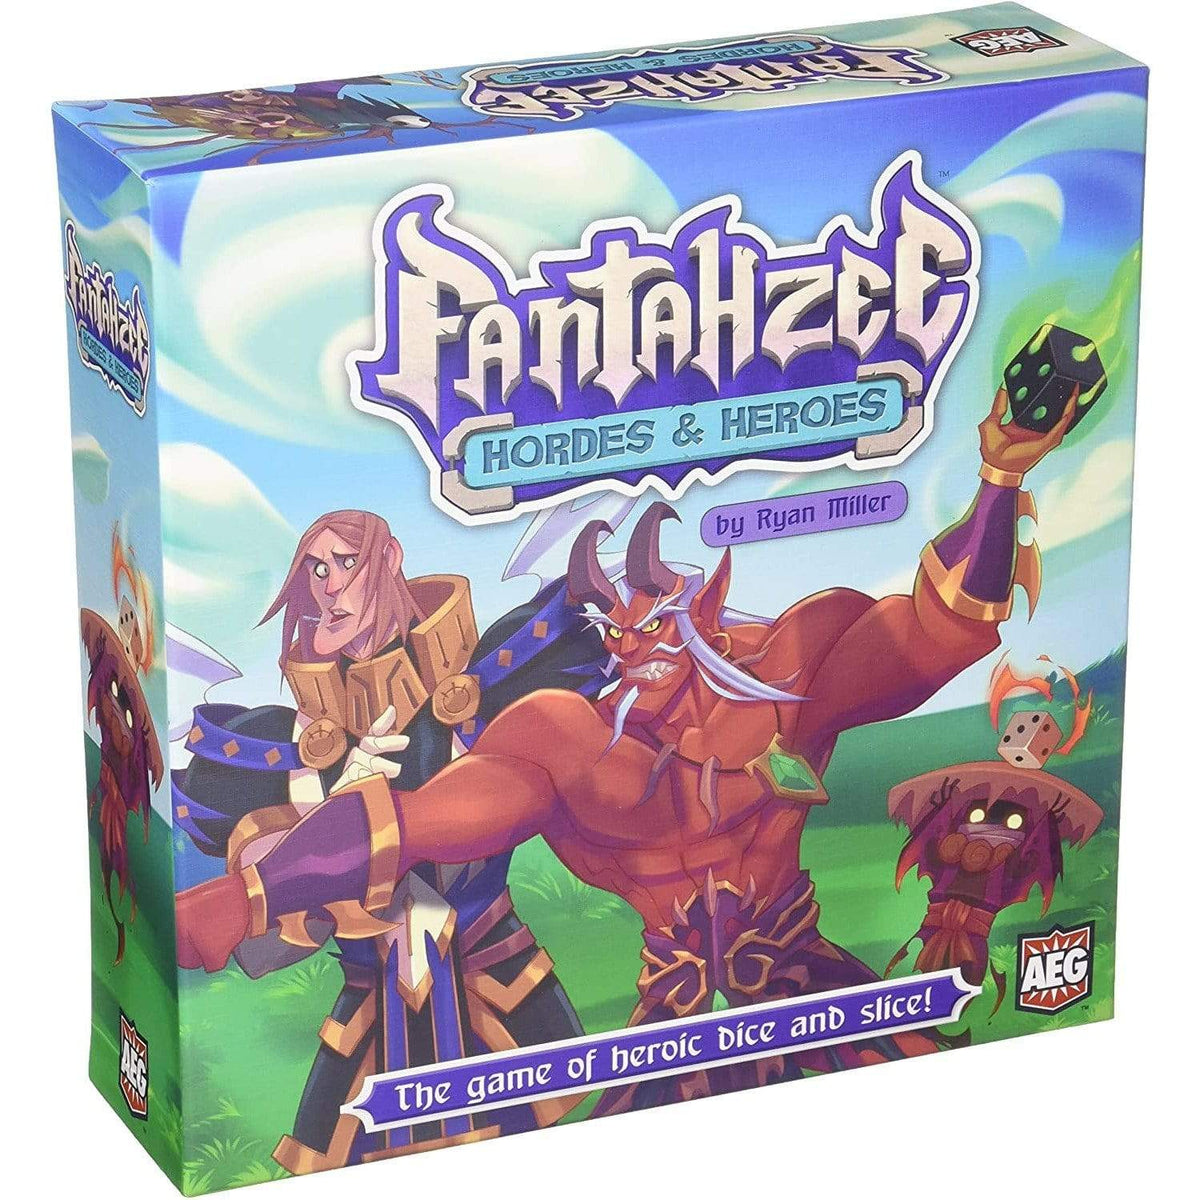 Fantahzee: Hordes And Heroes Alliance Games Board Games